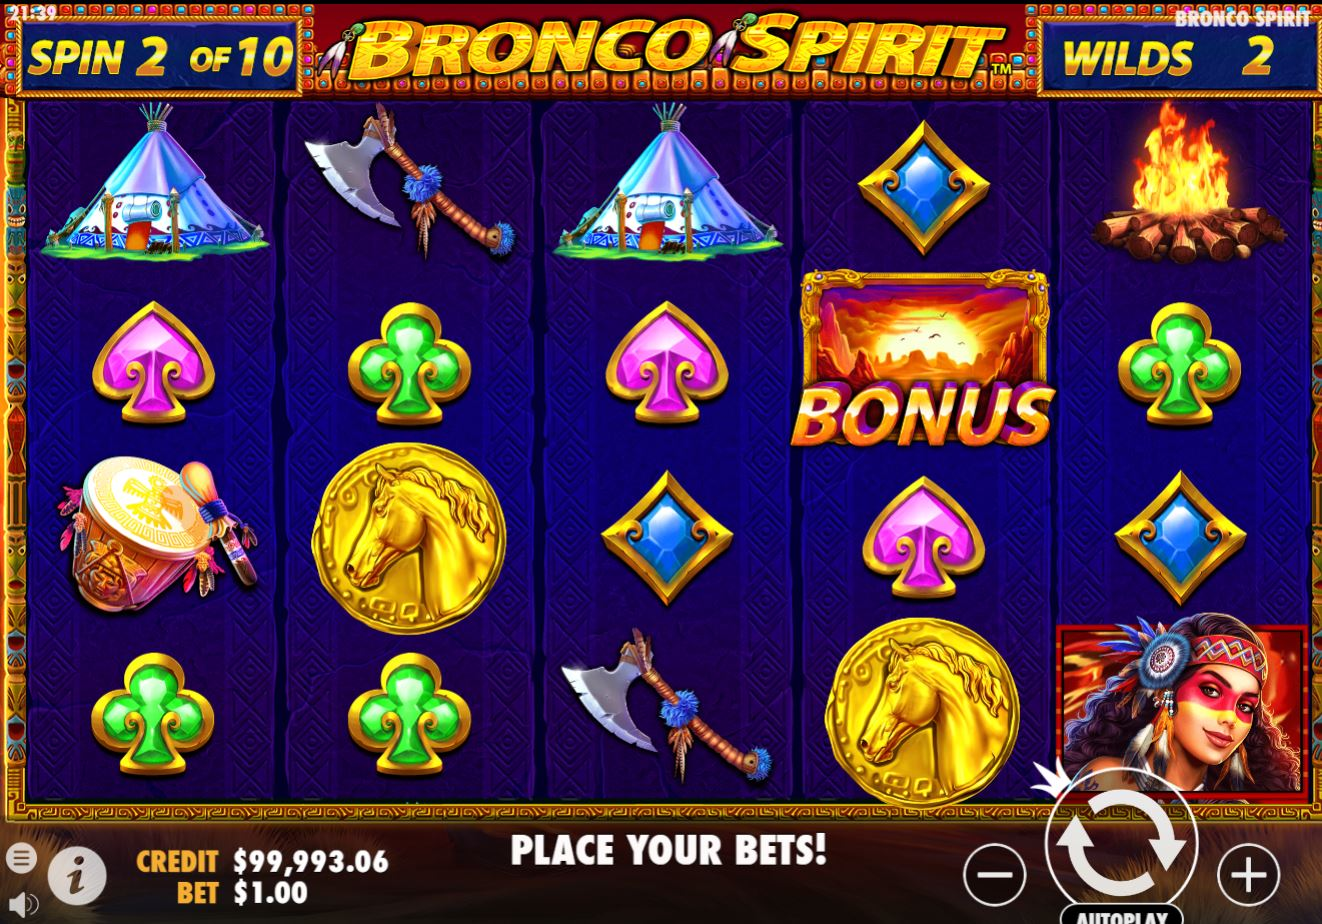 Bronco Spirit slot by Pragmatic Play free-play demo, review